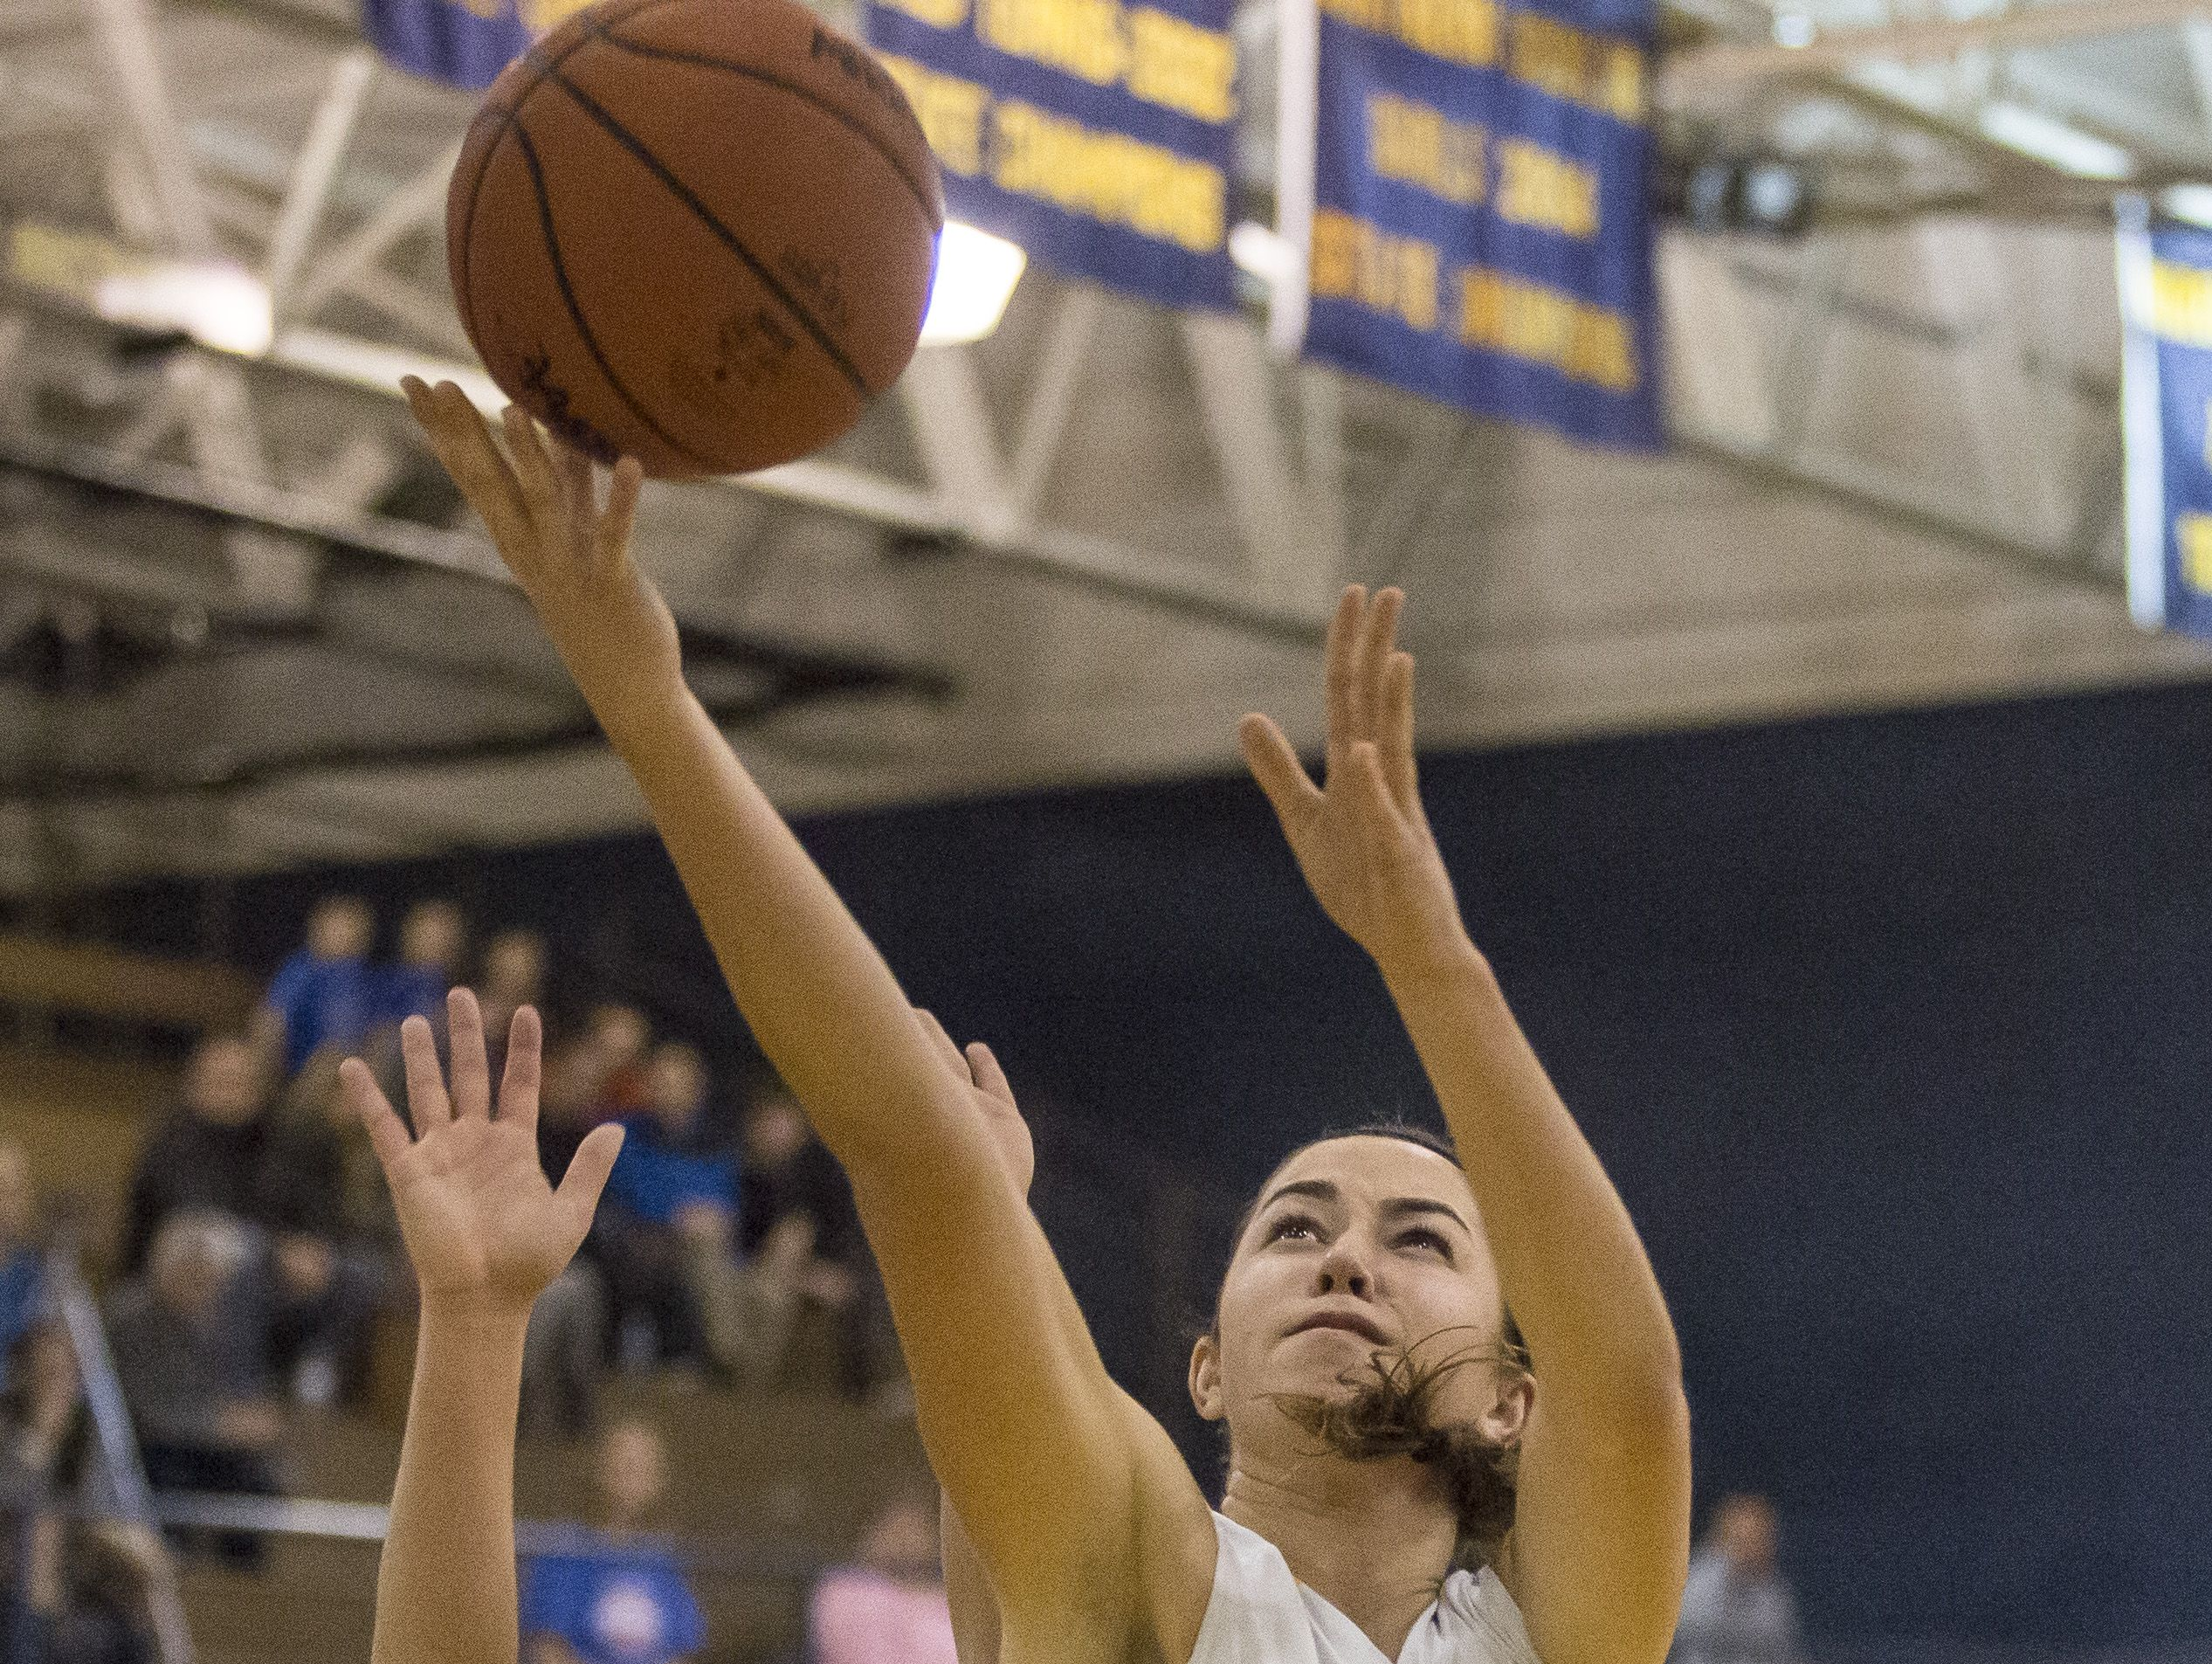 Port Huron Northern junior Jenna Koppinger takes a shot over Cousino senior Machenzie Anderson during a basketball game Friday, Feb. 19, 2016 at Port Huron Northern High School.